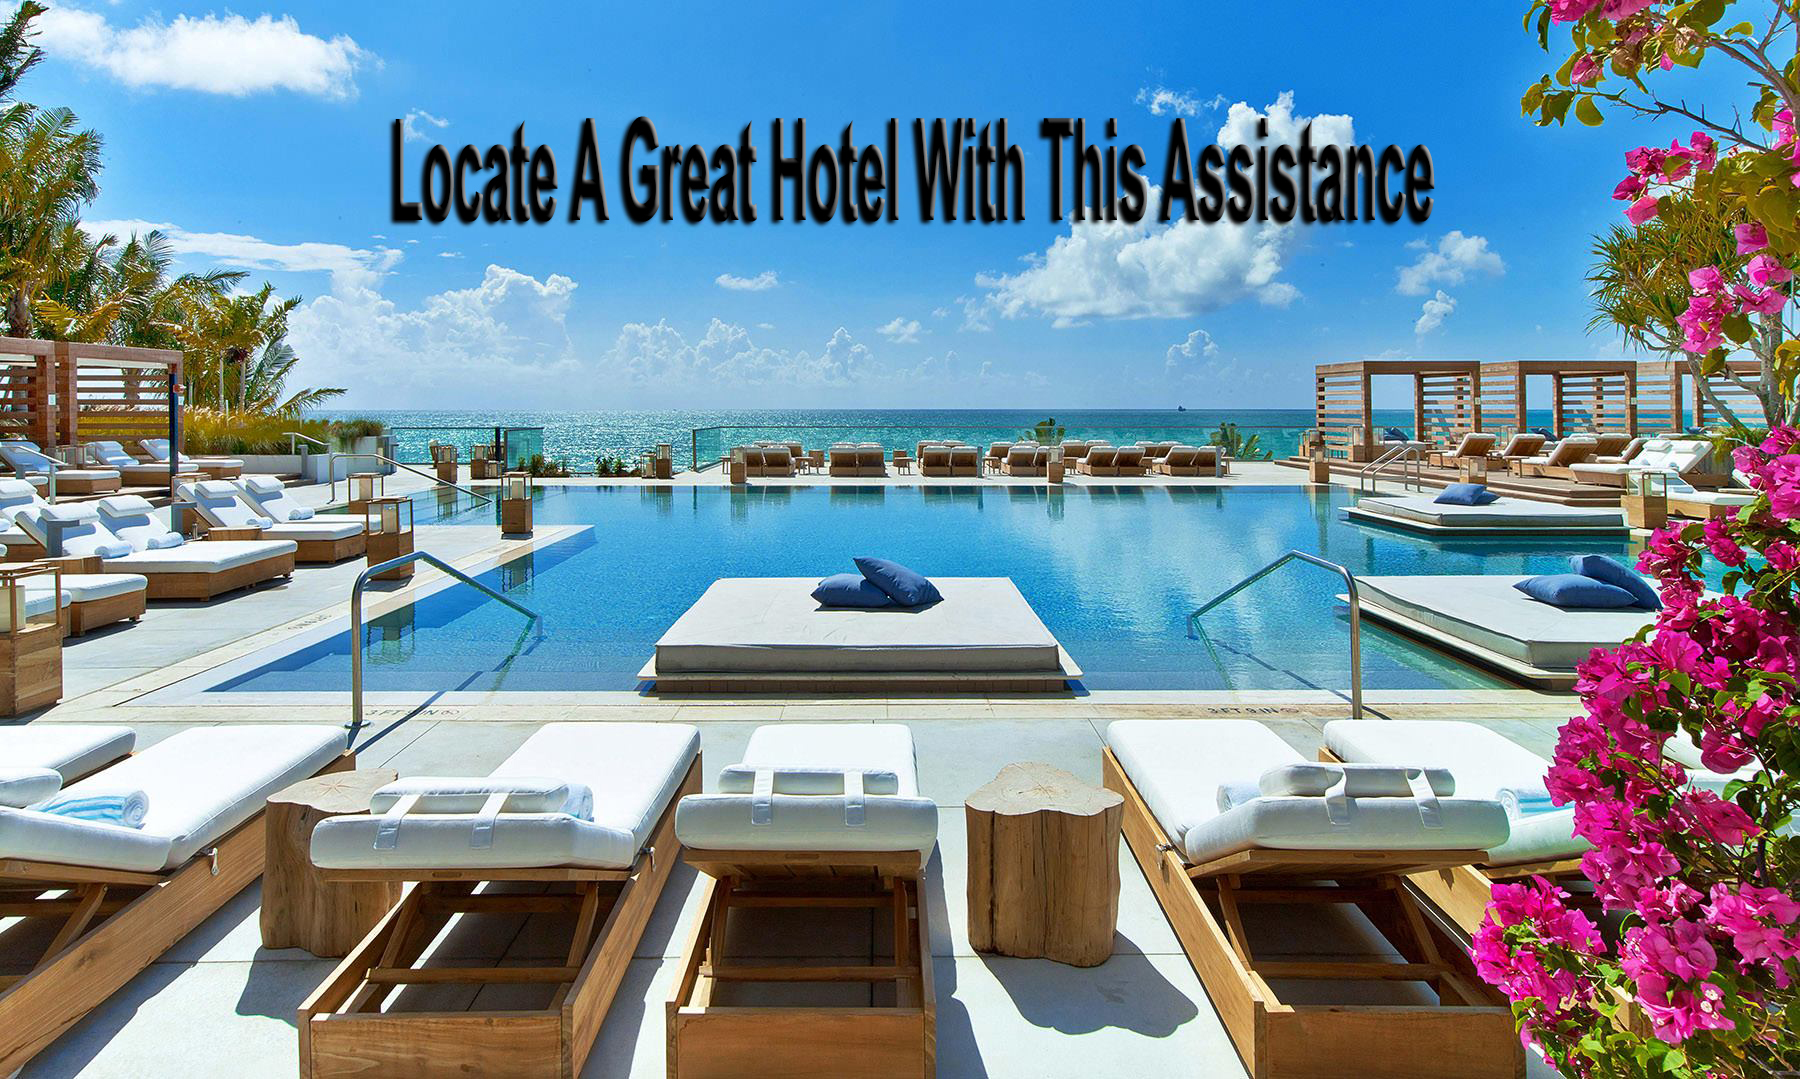 Locate A Great Hotel With This Assistance